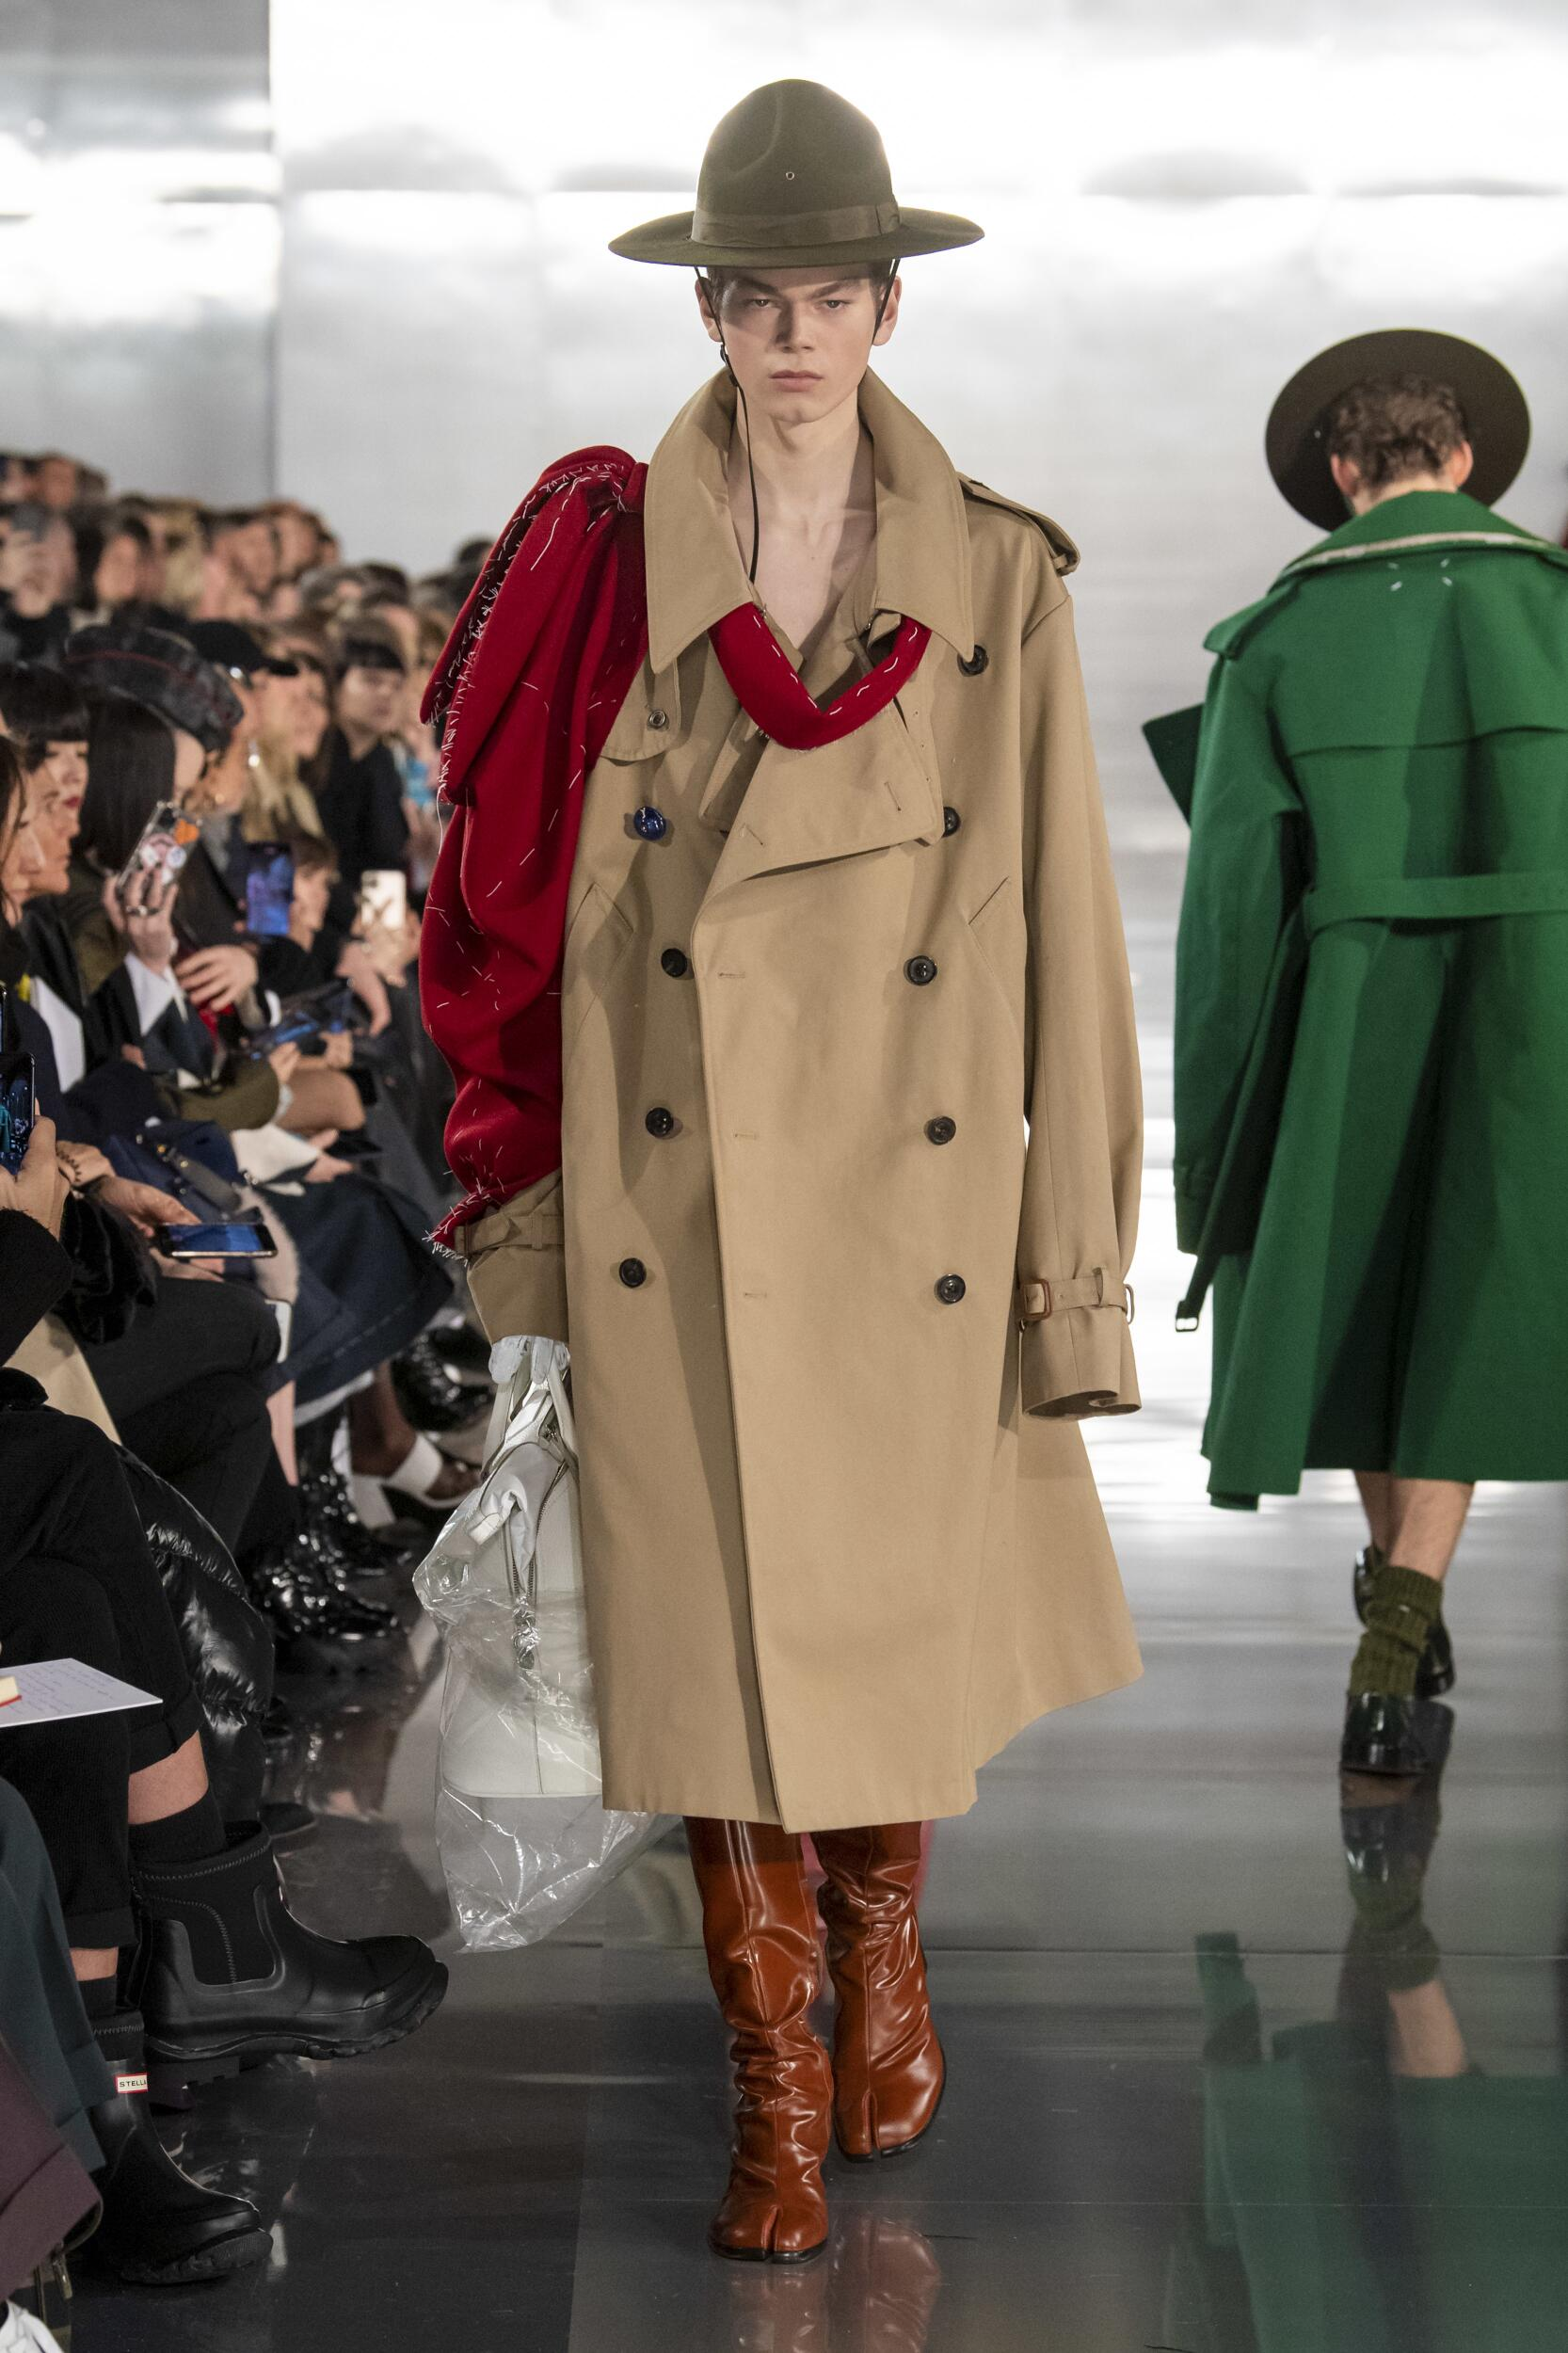 Catwalk Maison Margiela Men Fashion Show Winter 2020